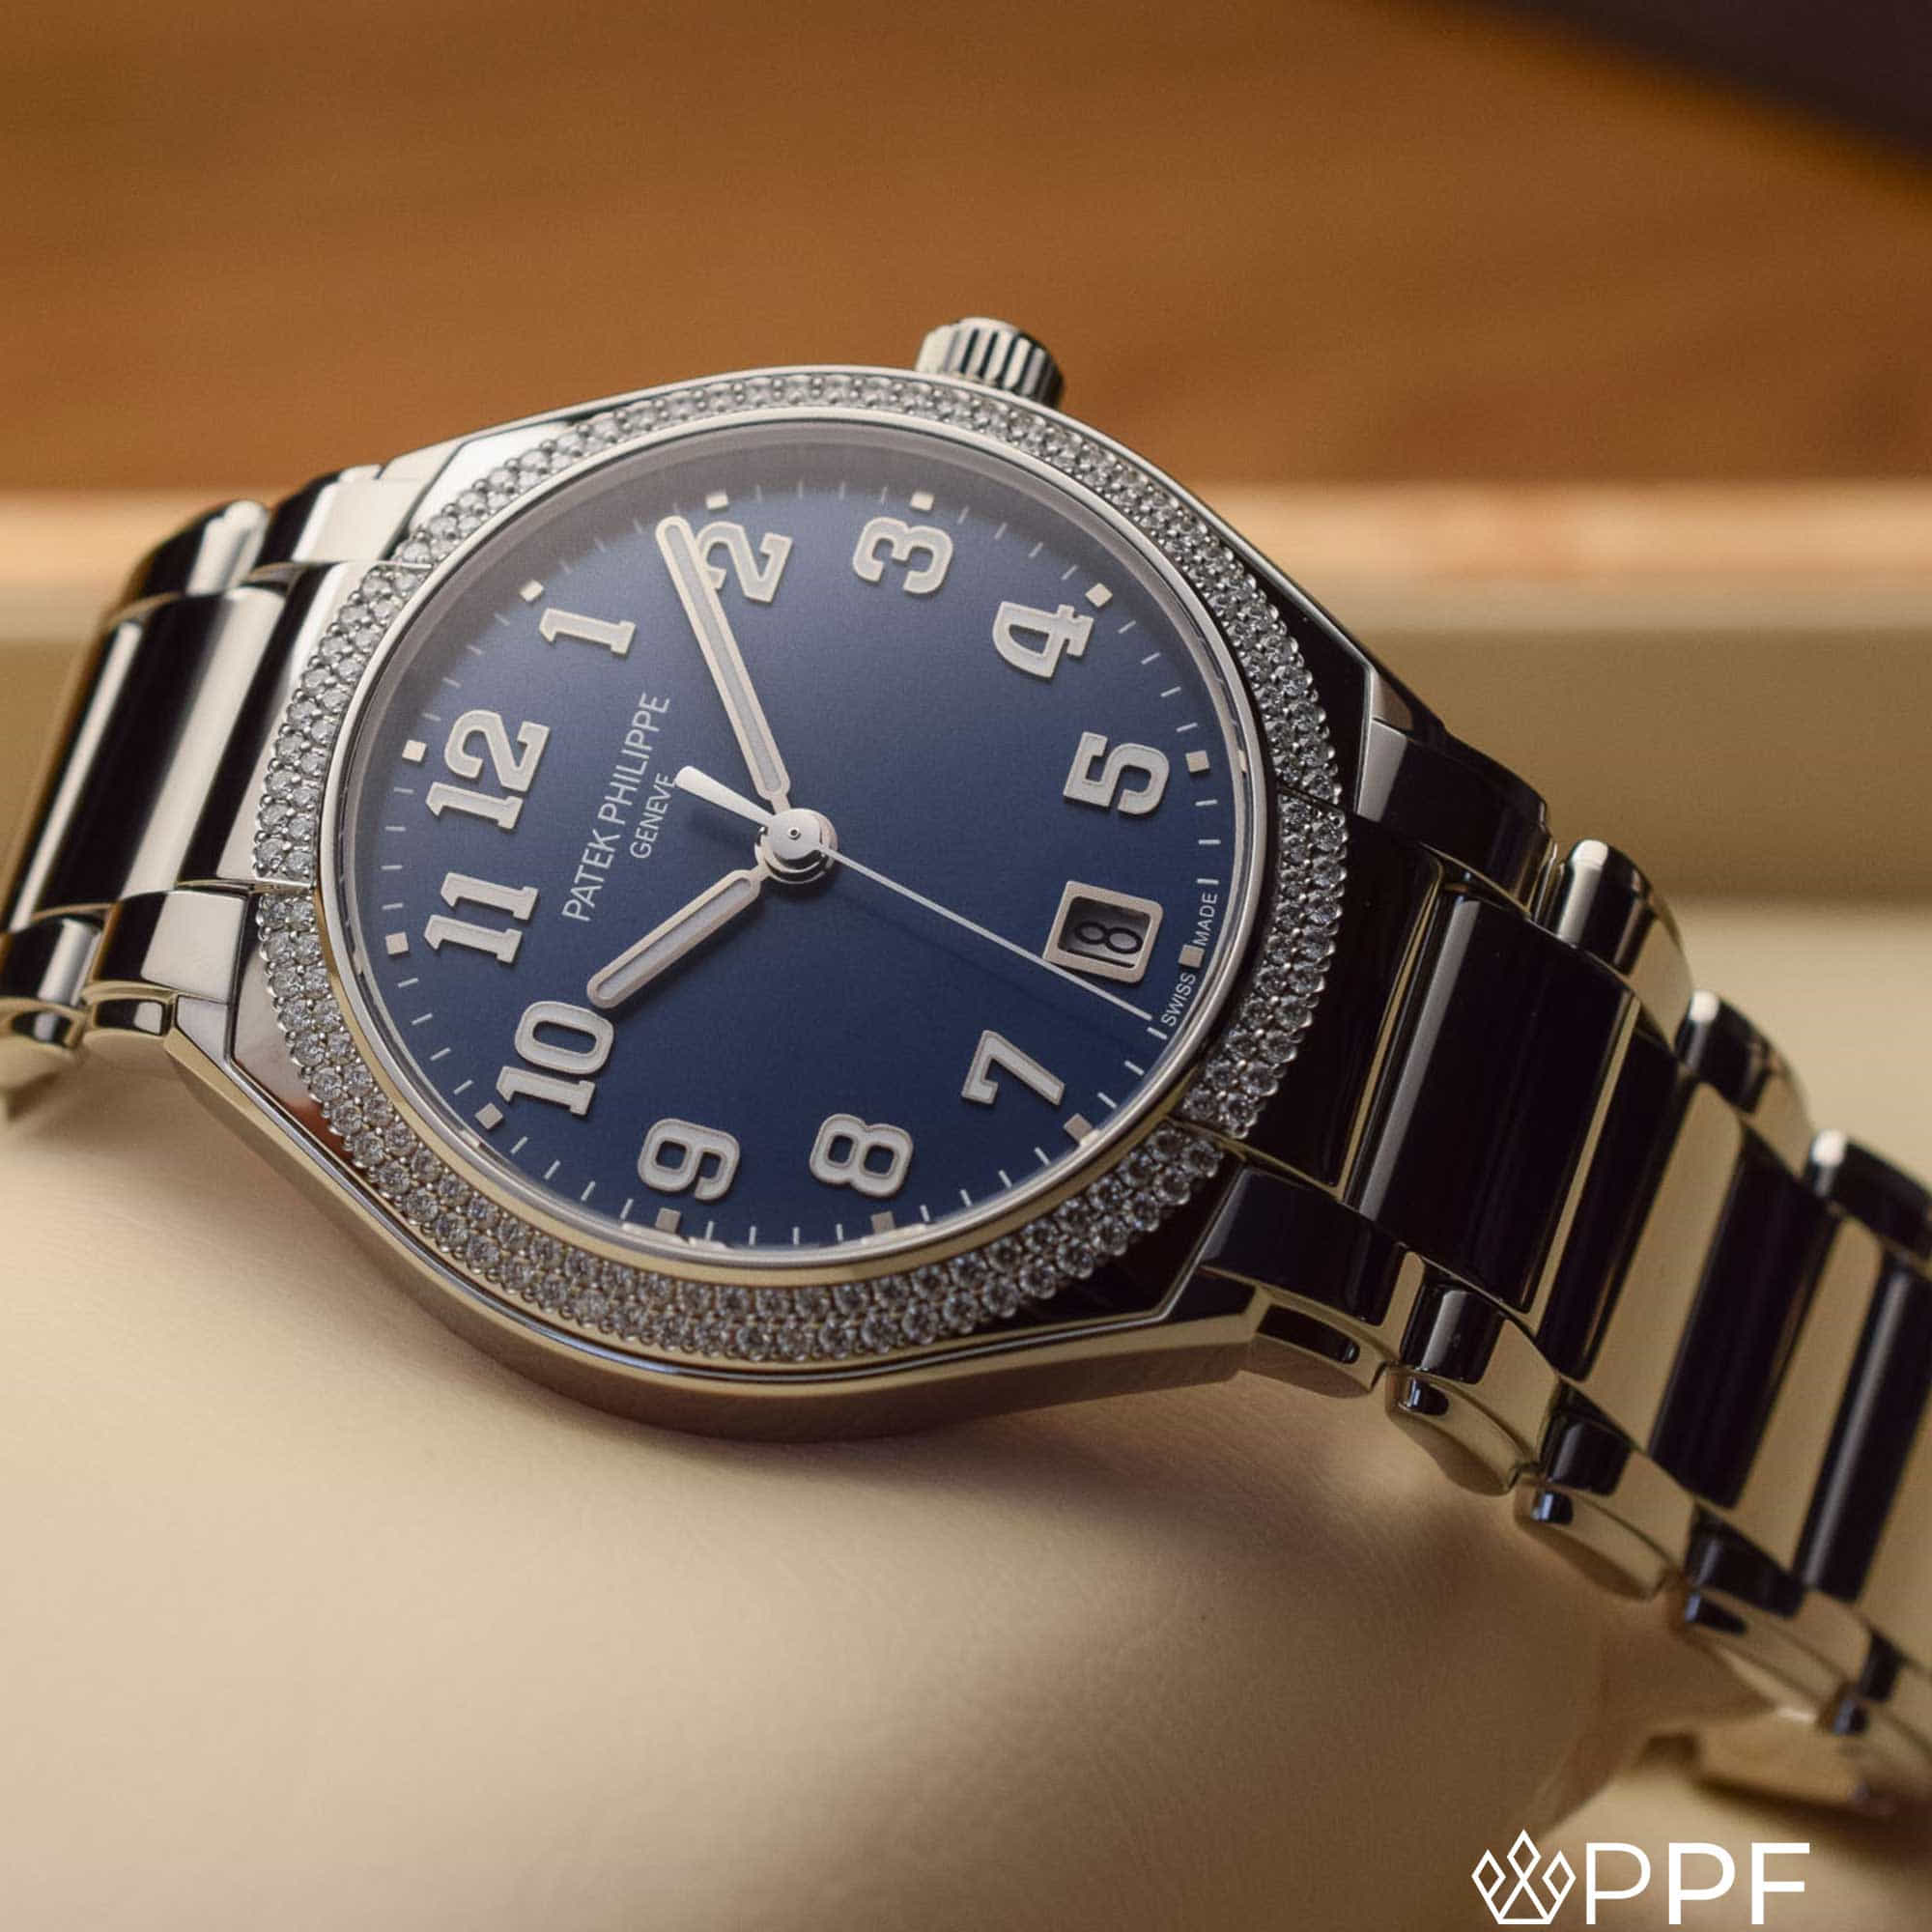 PPF For Watches